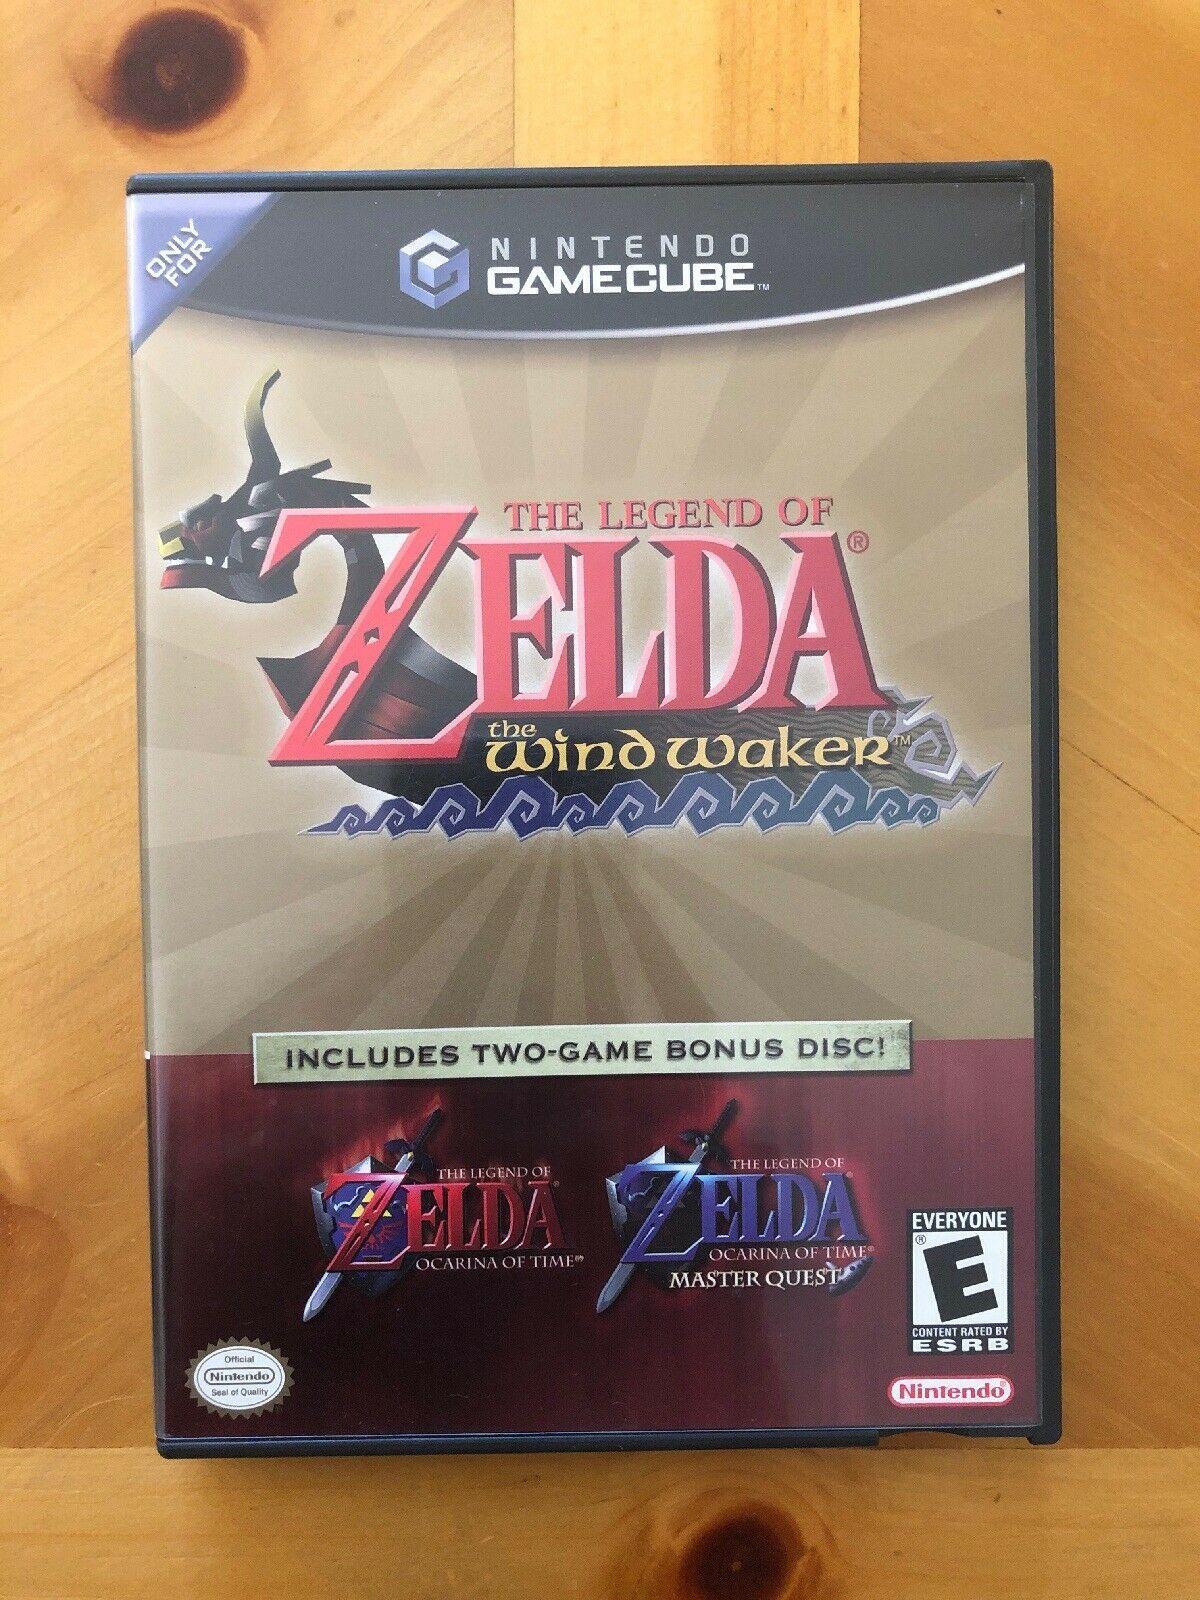 The Legend Of Zelda The Wind Waker 2-Game Bonus Disco, Nintendo Gamecube, Cib